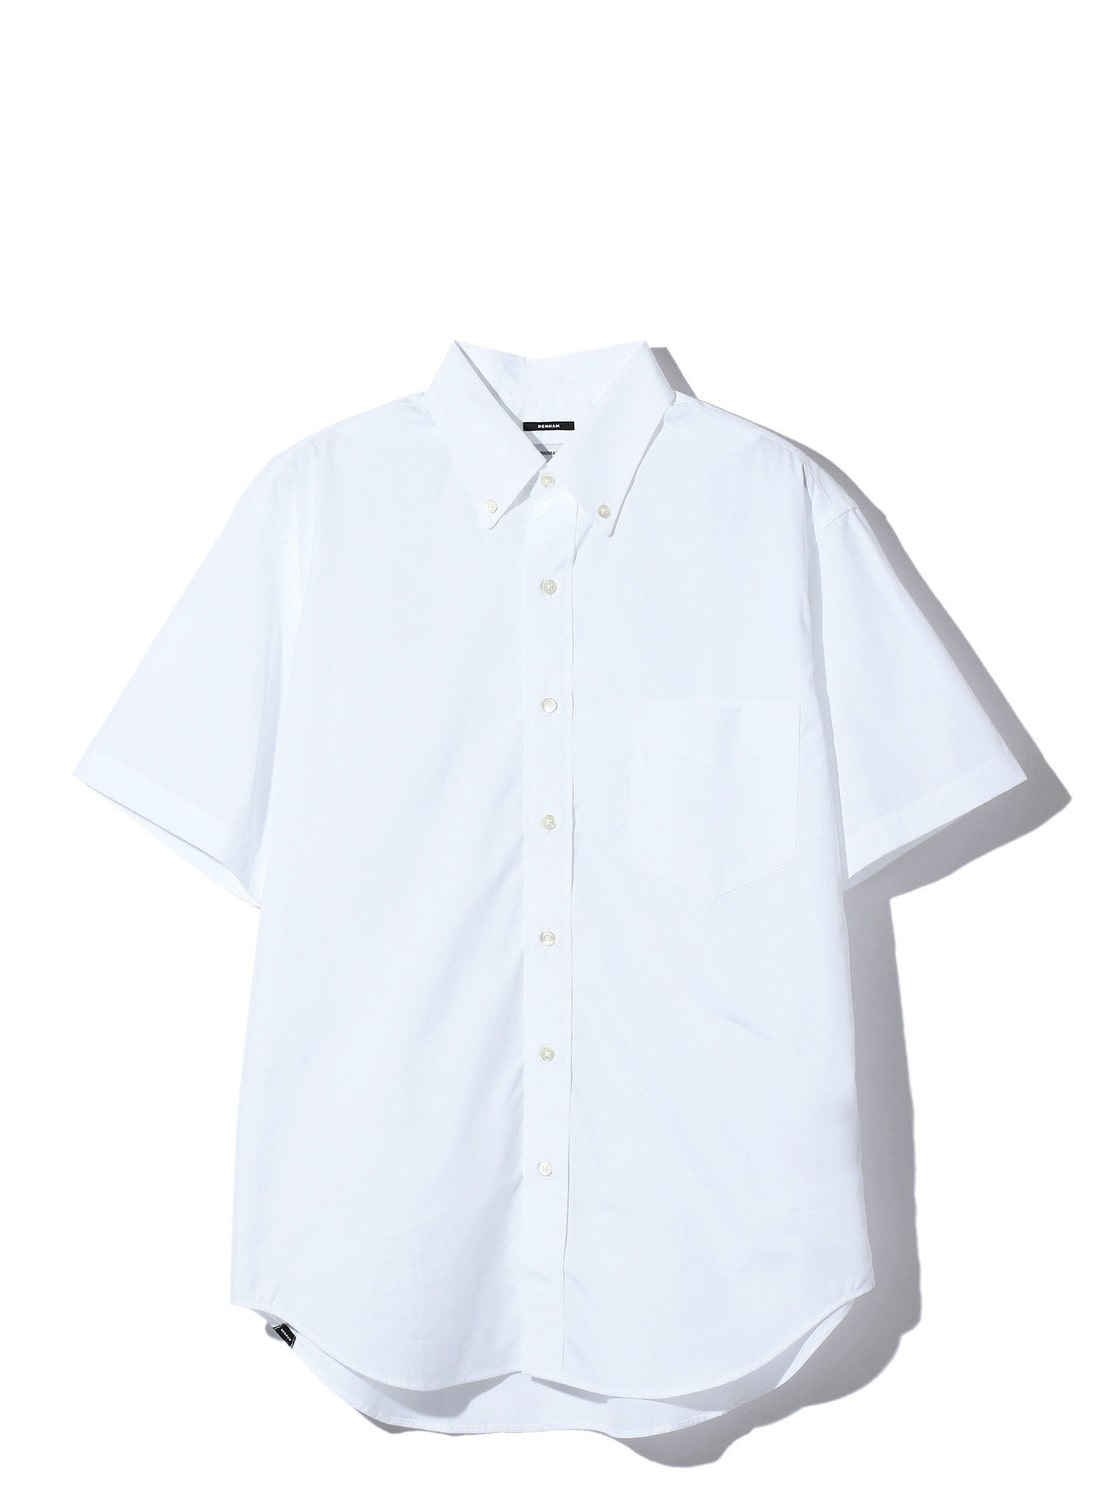 【日本限定】CITY SHIRT SS